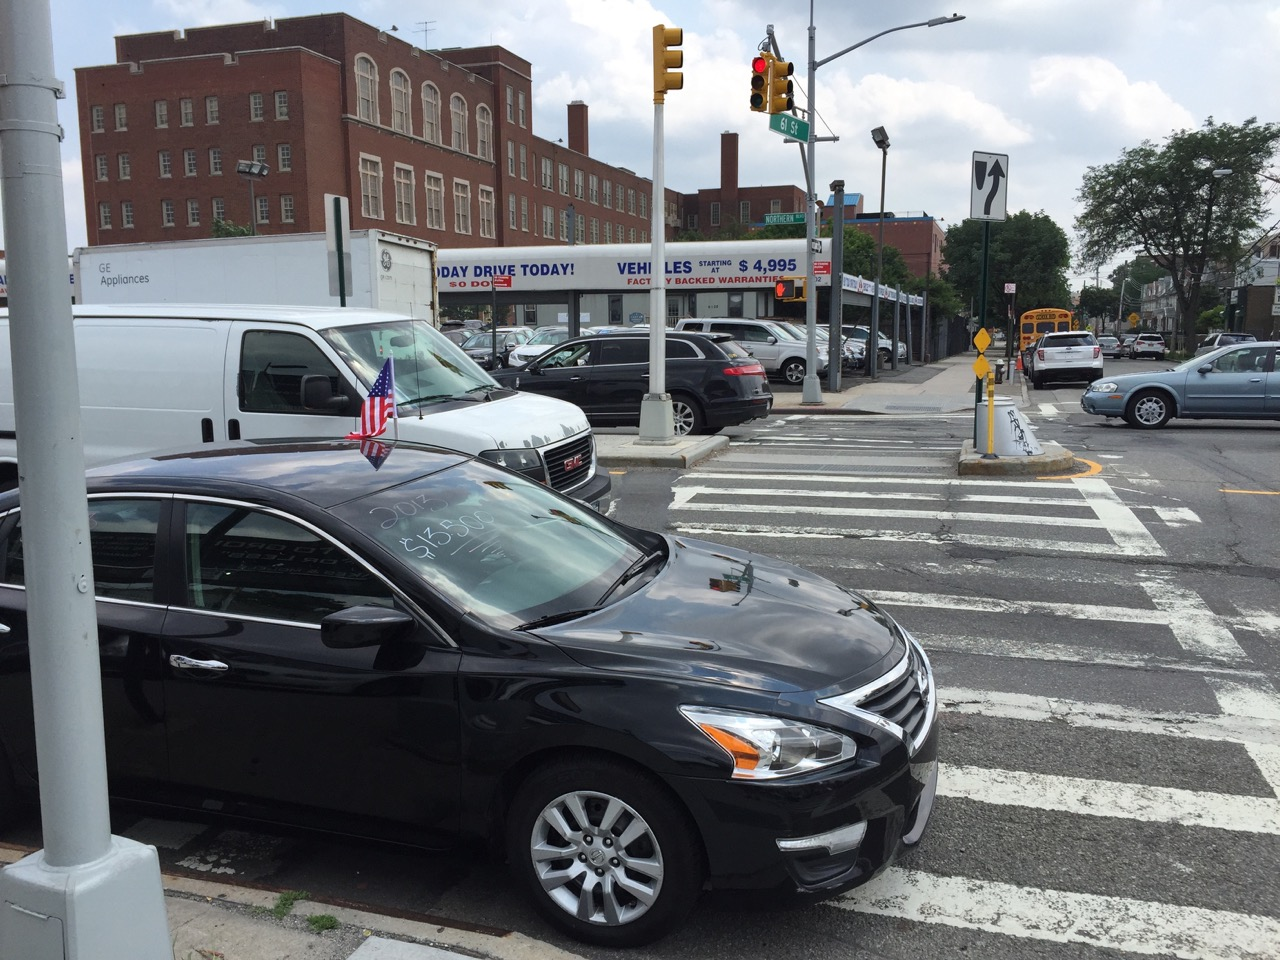 The crosswalk where 8-year-old Noshat Nahian was killed is blocked by a car dealership using it as a display space for its latest models. Photo: Clarence Eckerson Jr.